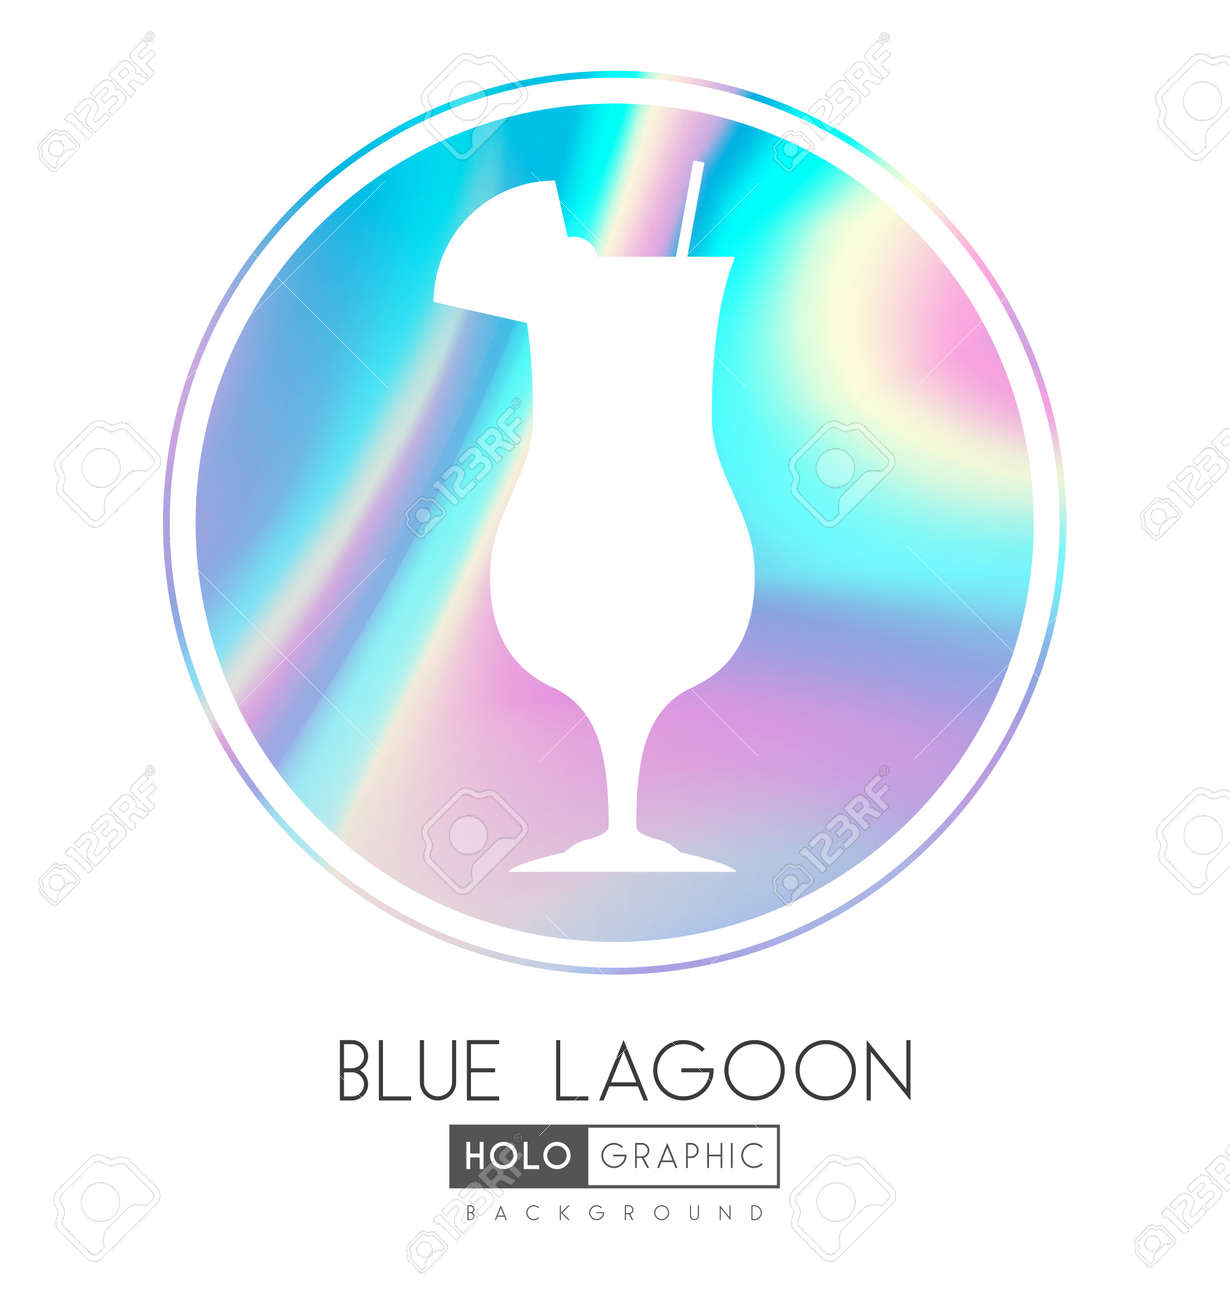 Cocktail silhouette on abstract holographic background. Blue lagoon cocktail holographic icon - 169983707